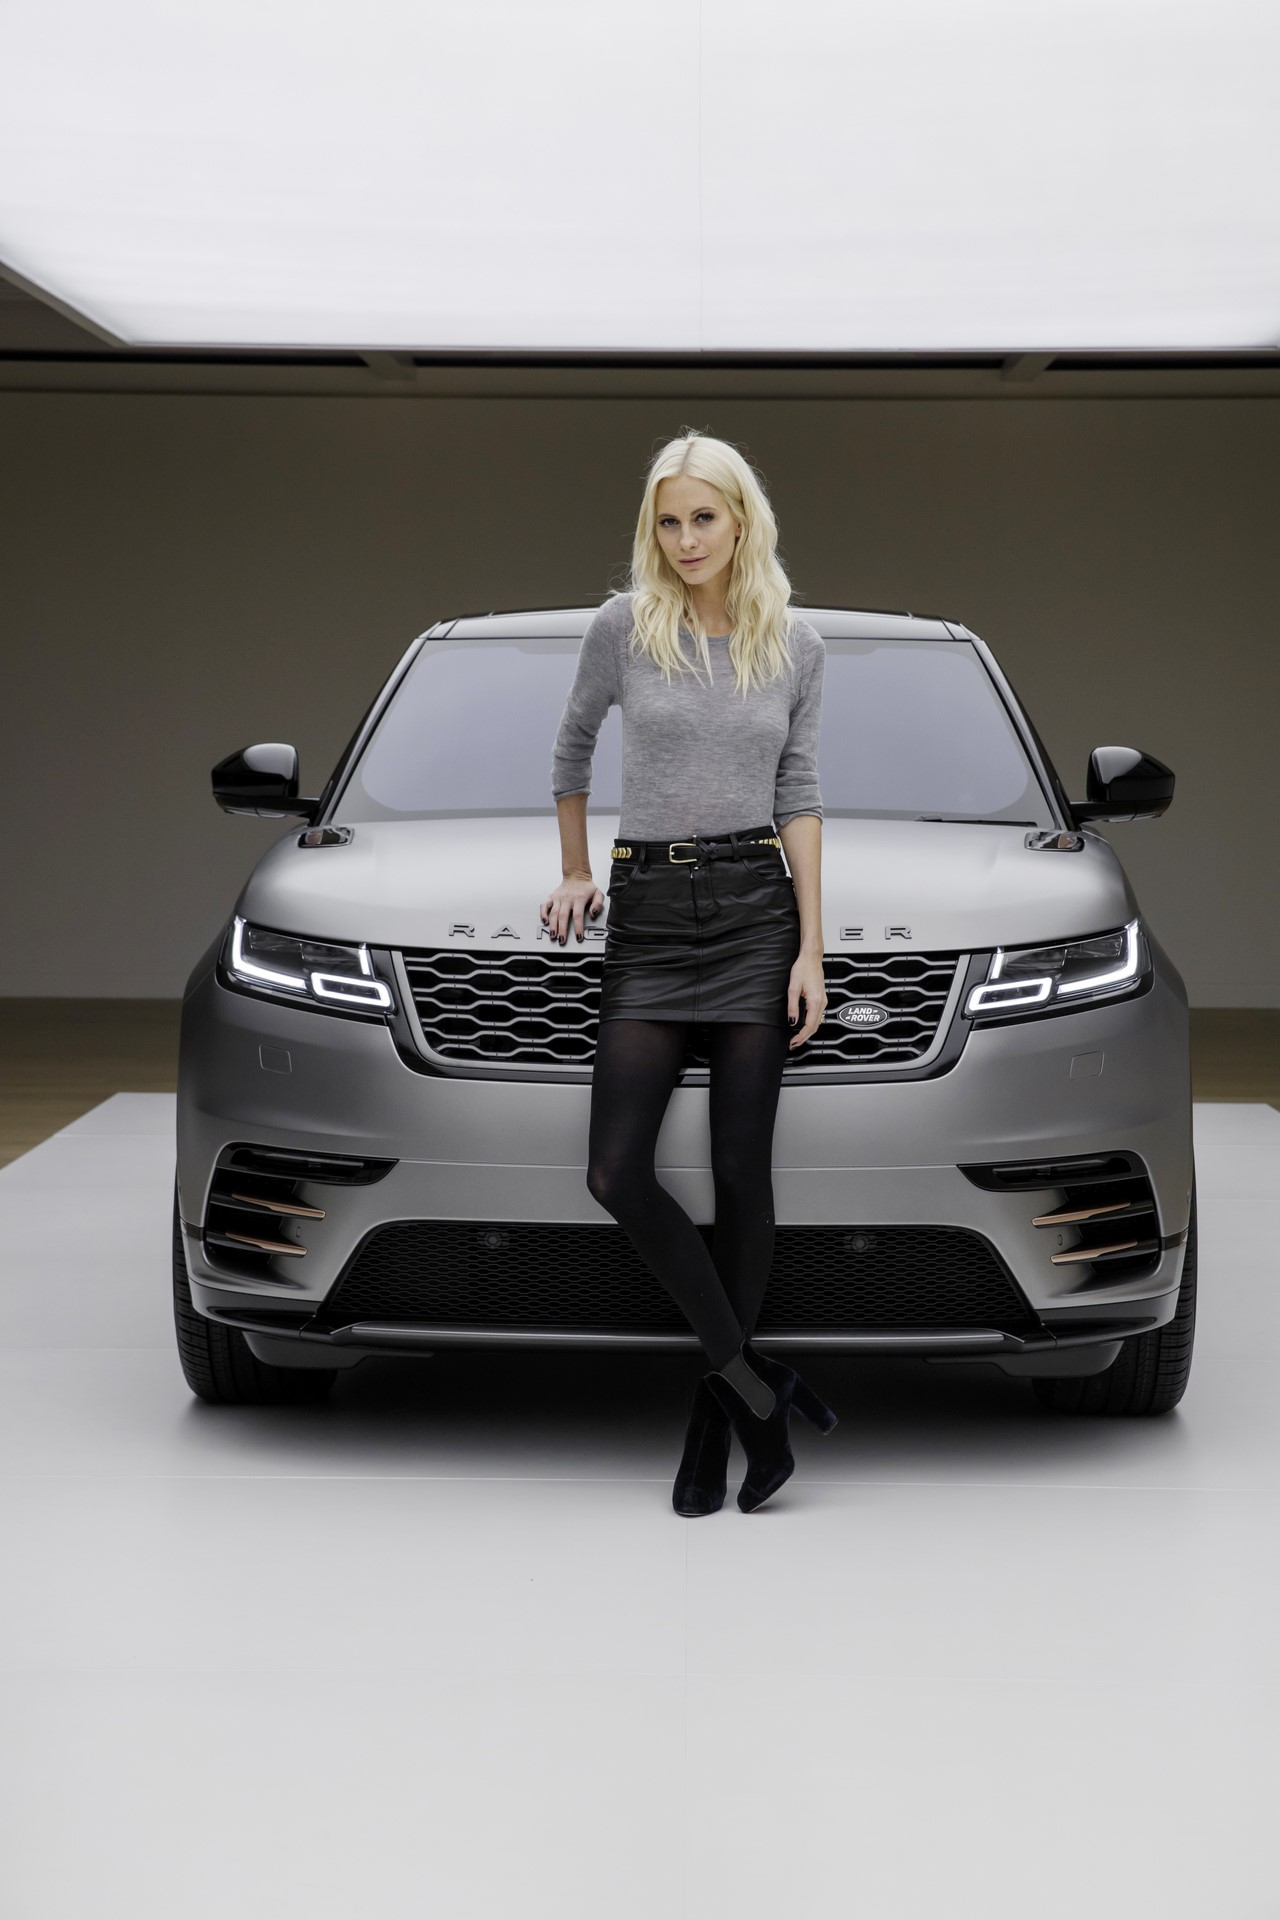 Model and Actress Poppy Delevingne with the Range Rover Velar at its launch at the Design Musuem, London. EMBARGOED UNTIL 20.30 GMT, 1 March 2017